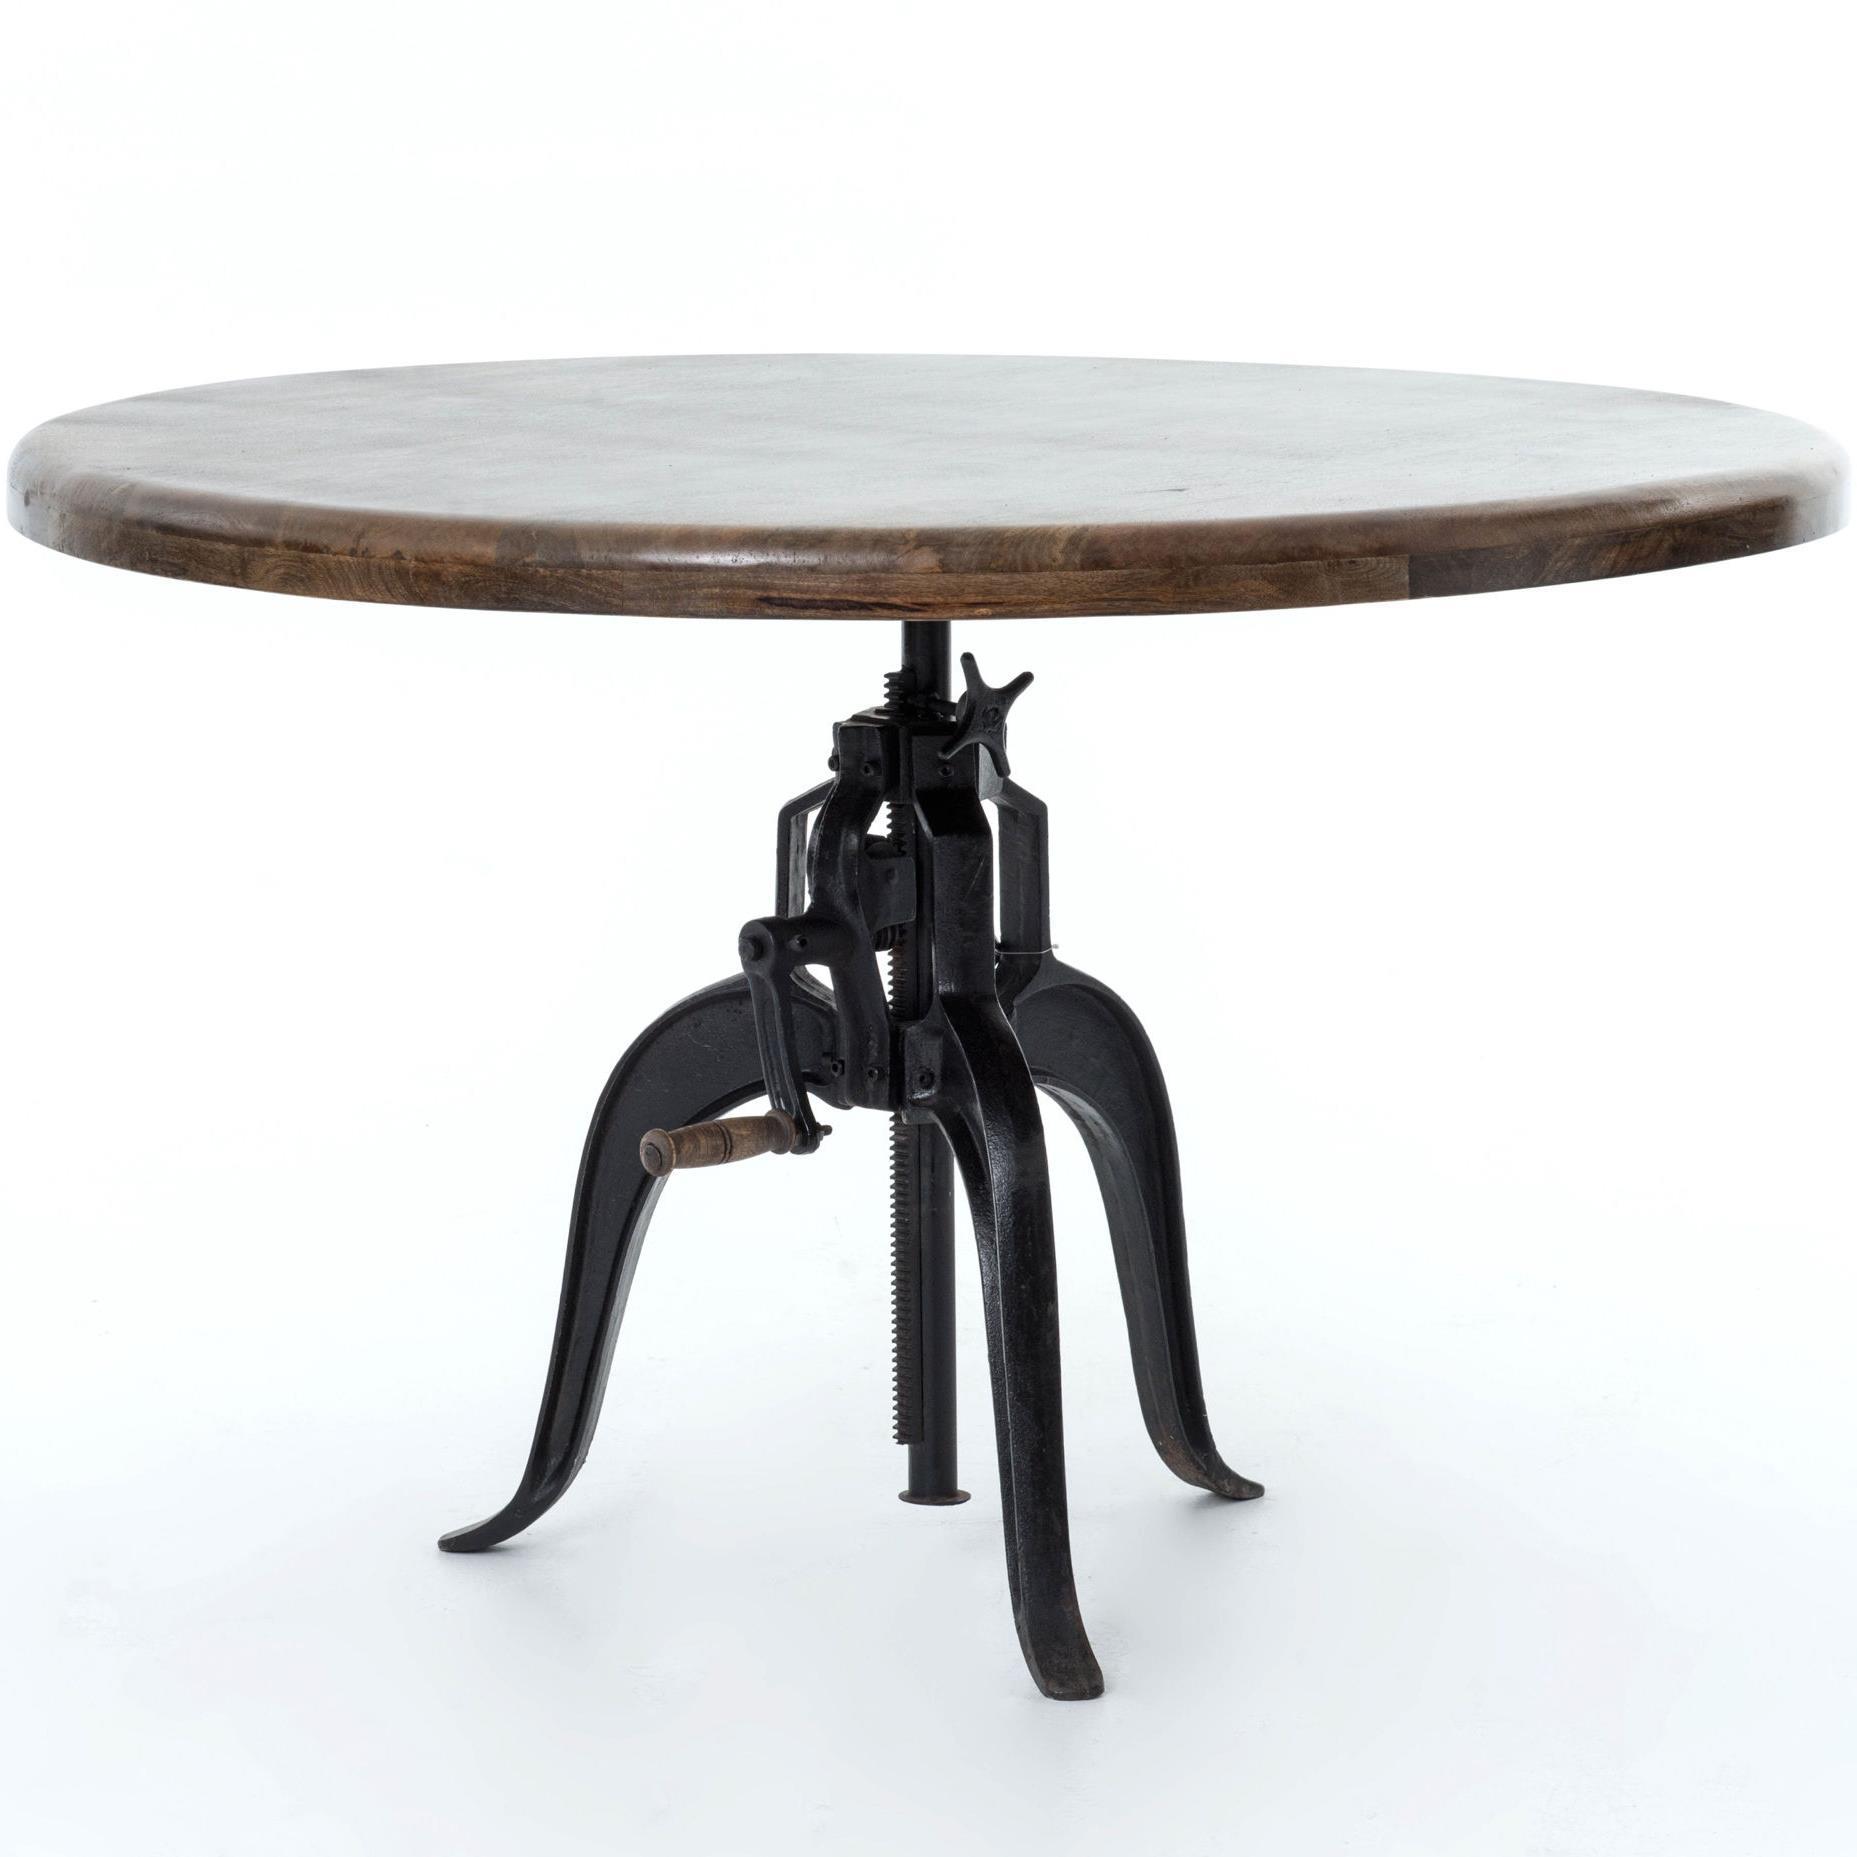 Very Adjustable Round Dining Table with Cast Iron Base by Four Hands  MN71